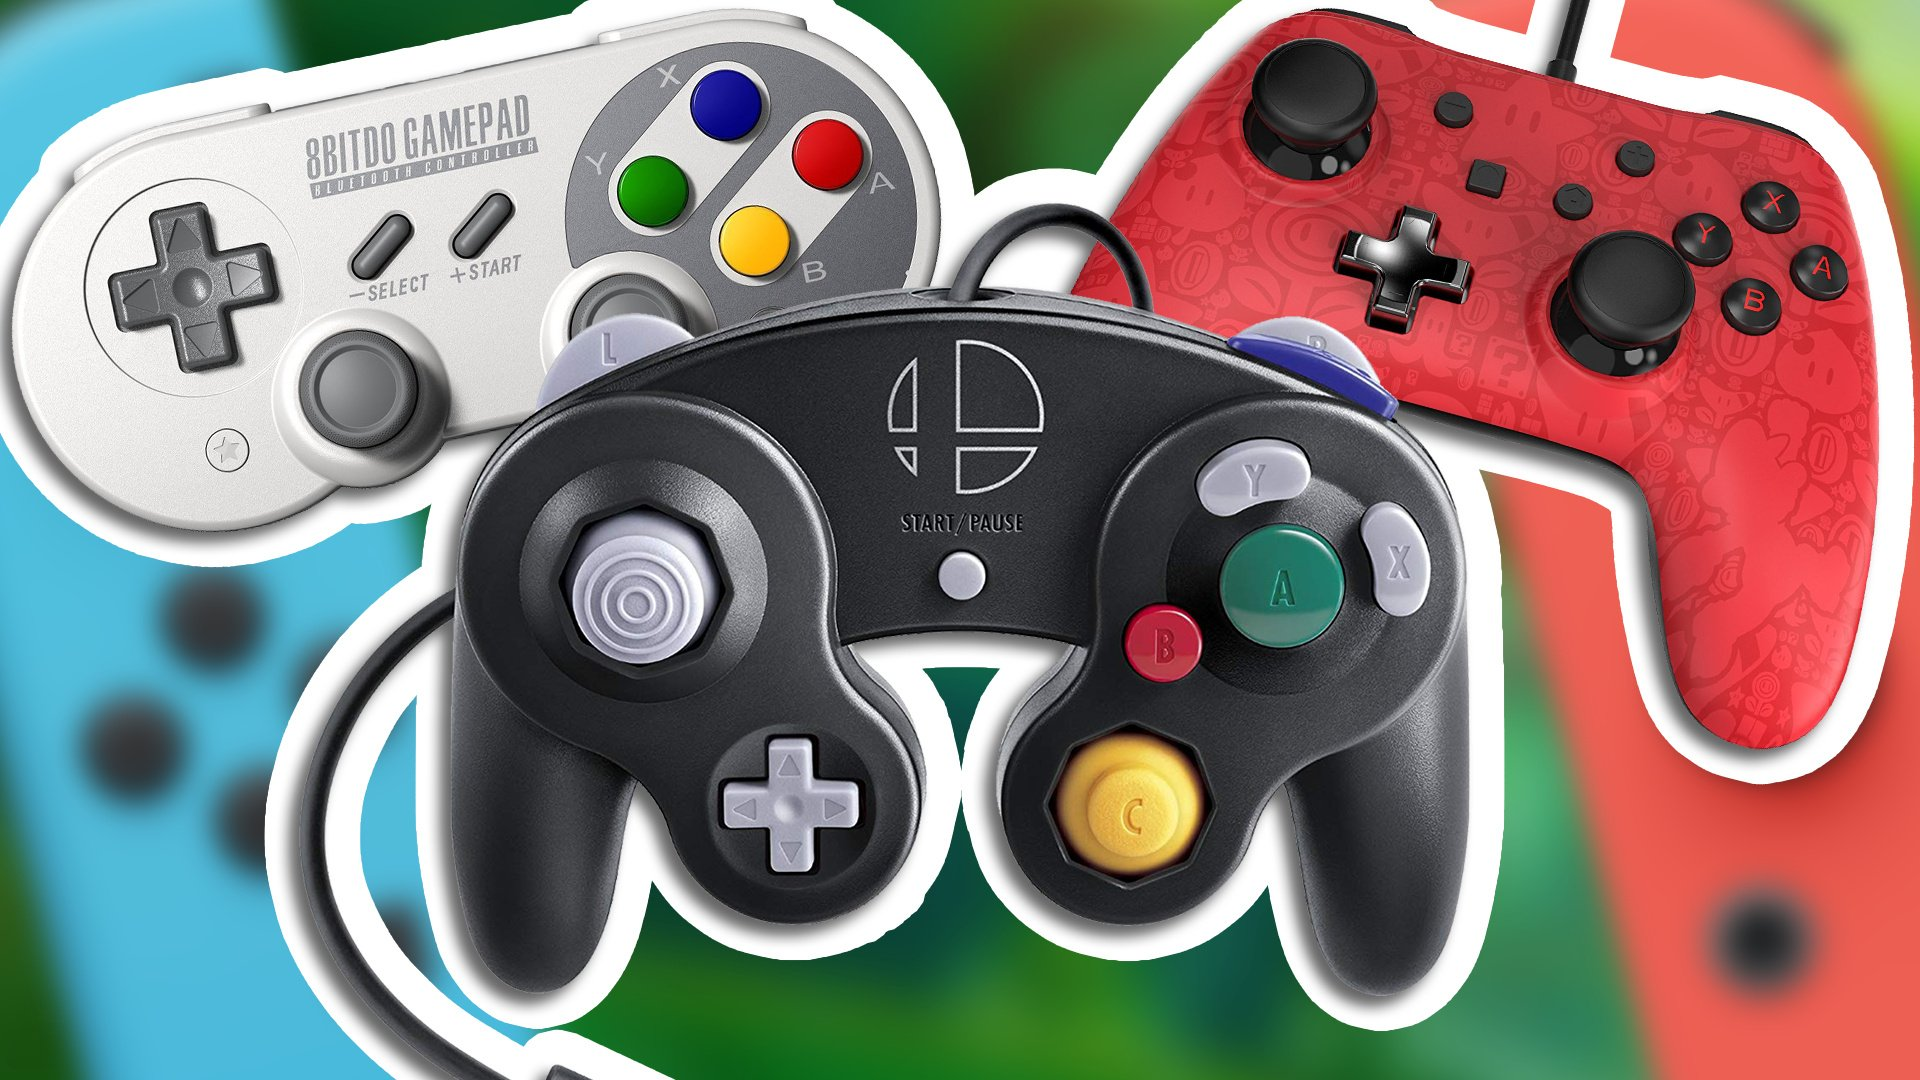 Best Nintendo Switch Controllers In 2019 - Guide - Nintendo Life